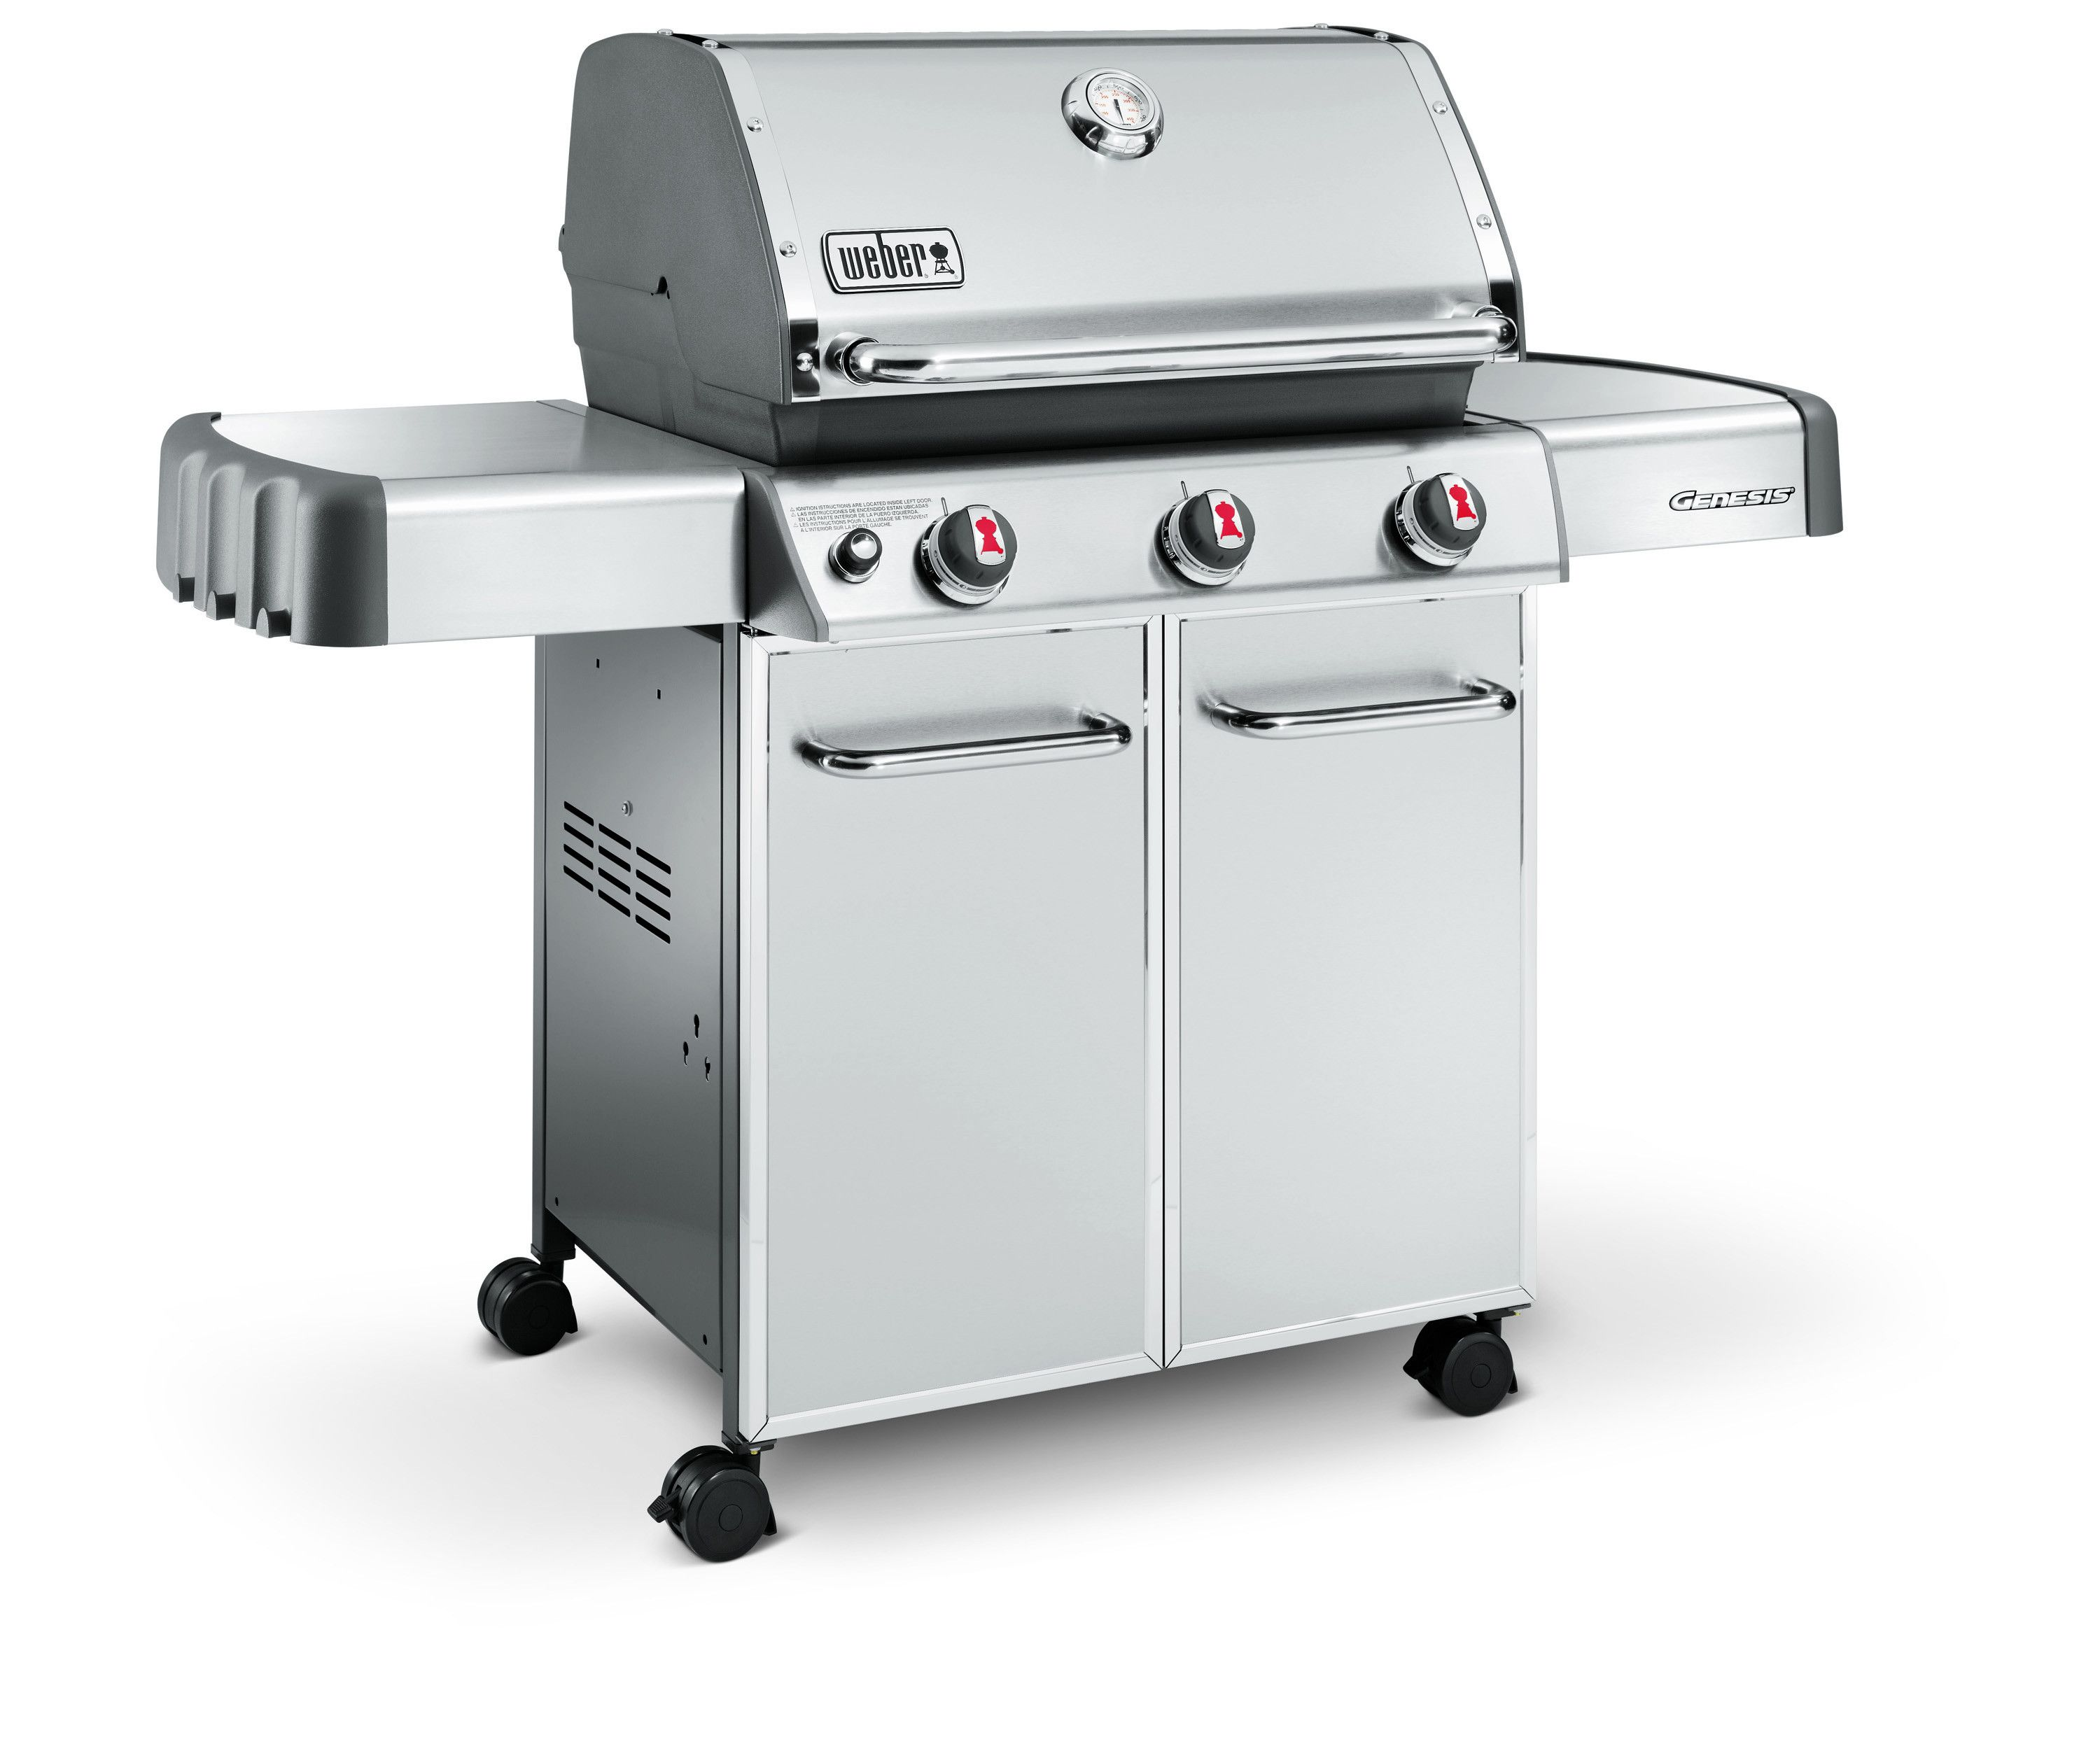 Boretti Robusto Review Char Broil Performance 2 Burner Liquid Propane Gas Grill With Side